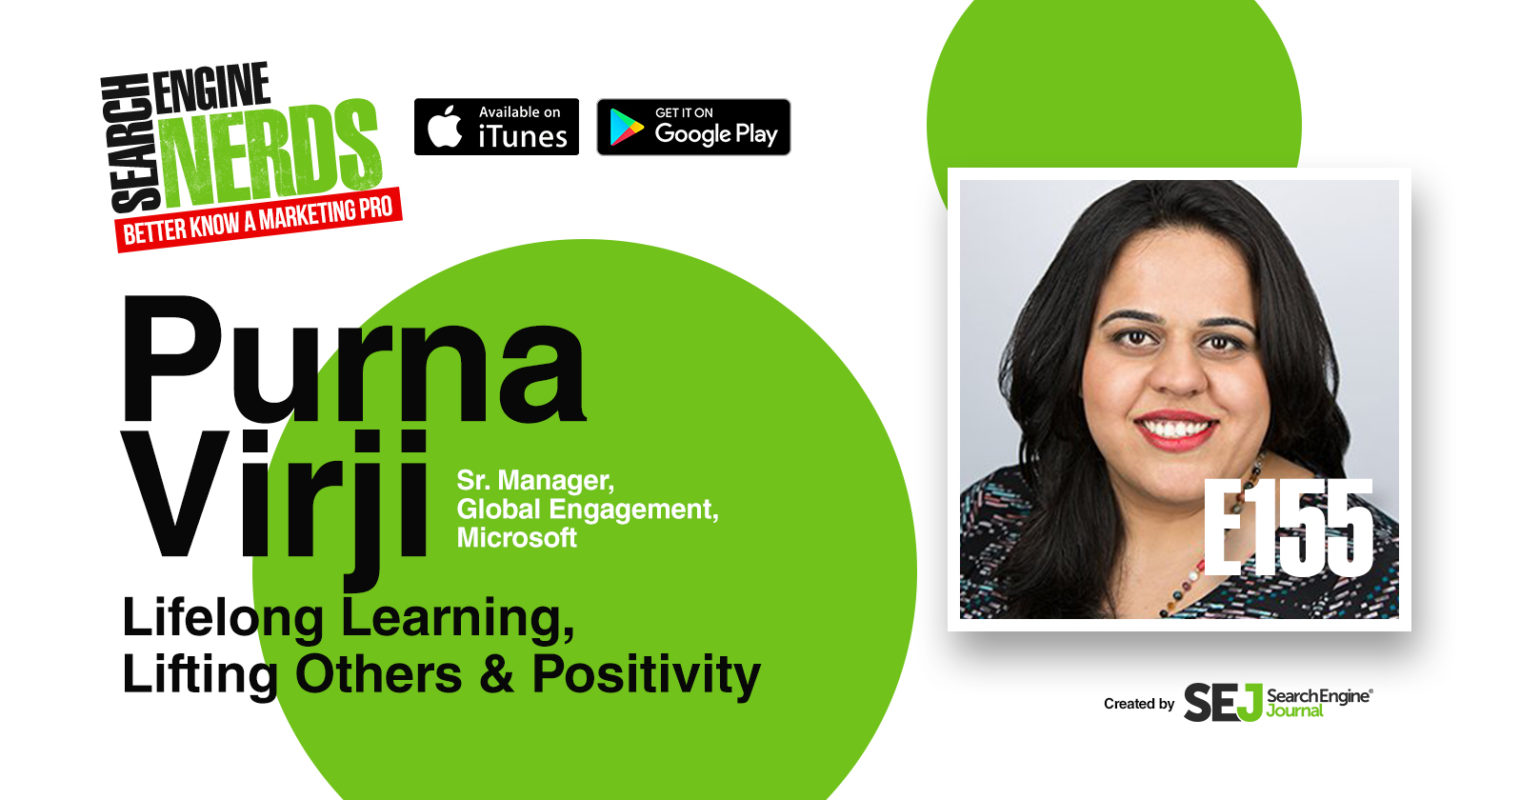 Microsoft's Purna Virji on Lifelong Learning, Lifting Others & Positivity [PODCAST]